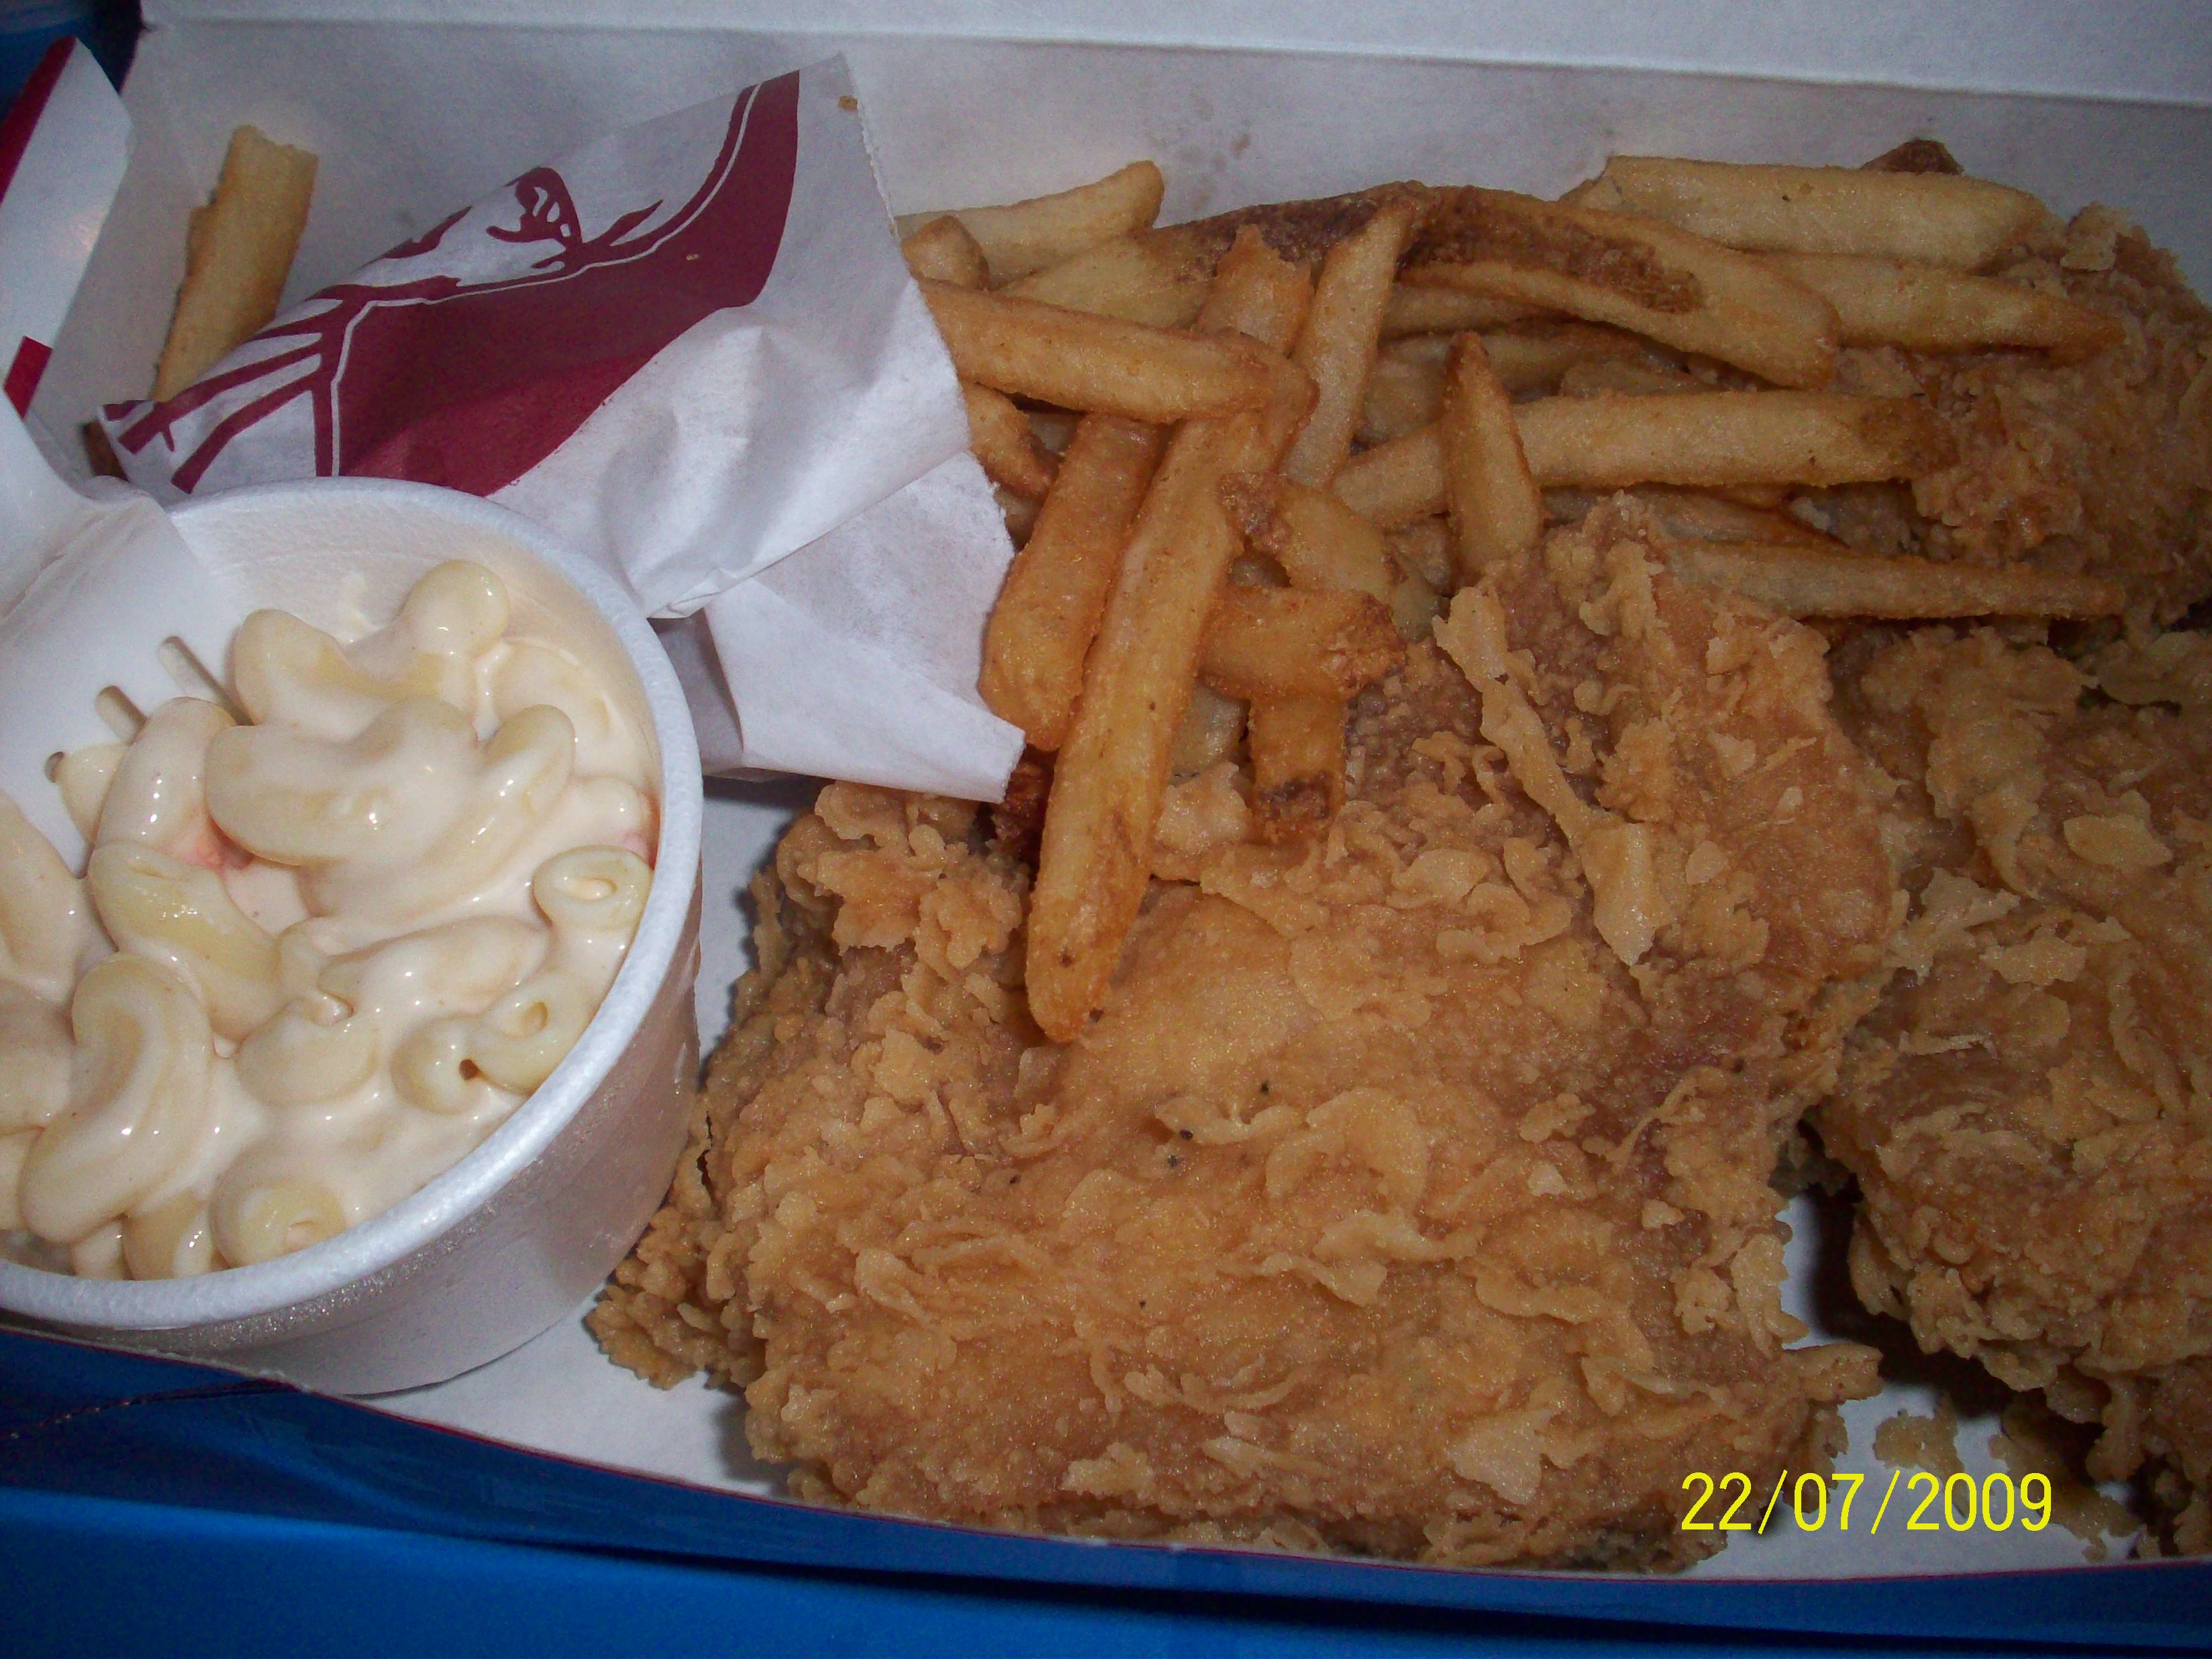 https://foodloader.net/cutie_2009-07-22_KFC_Chicken_Meal.jpg